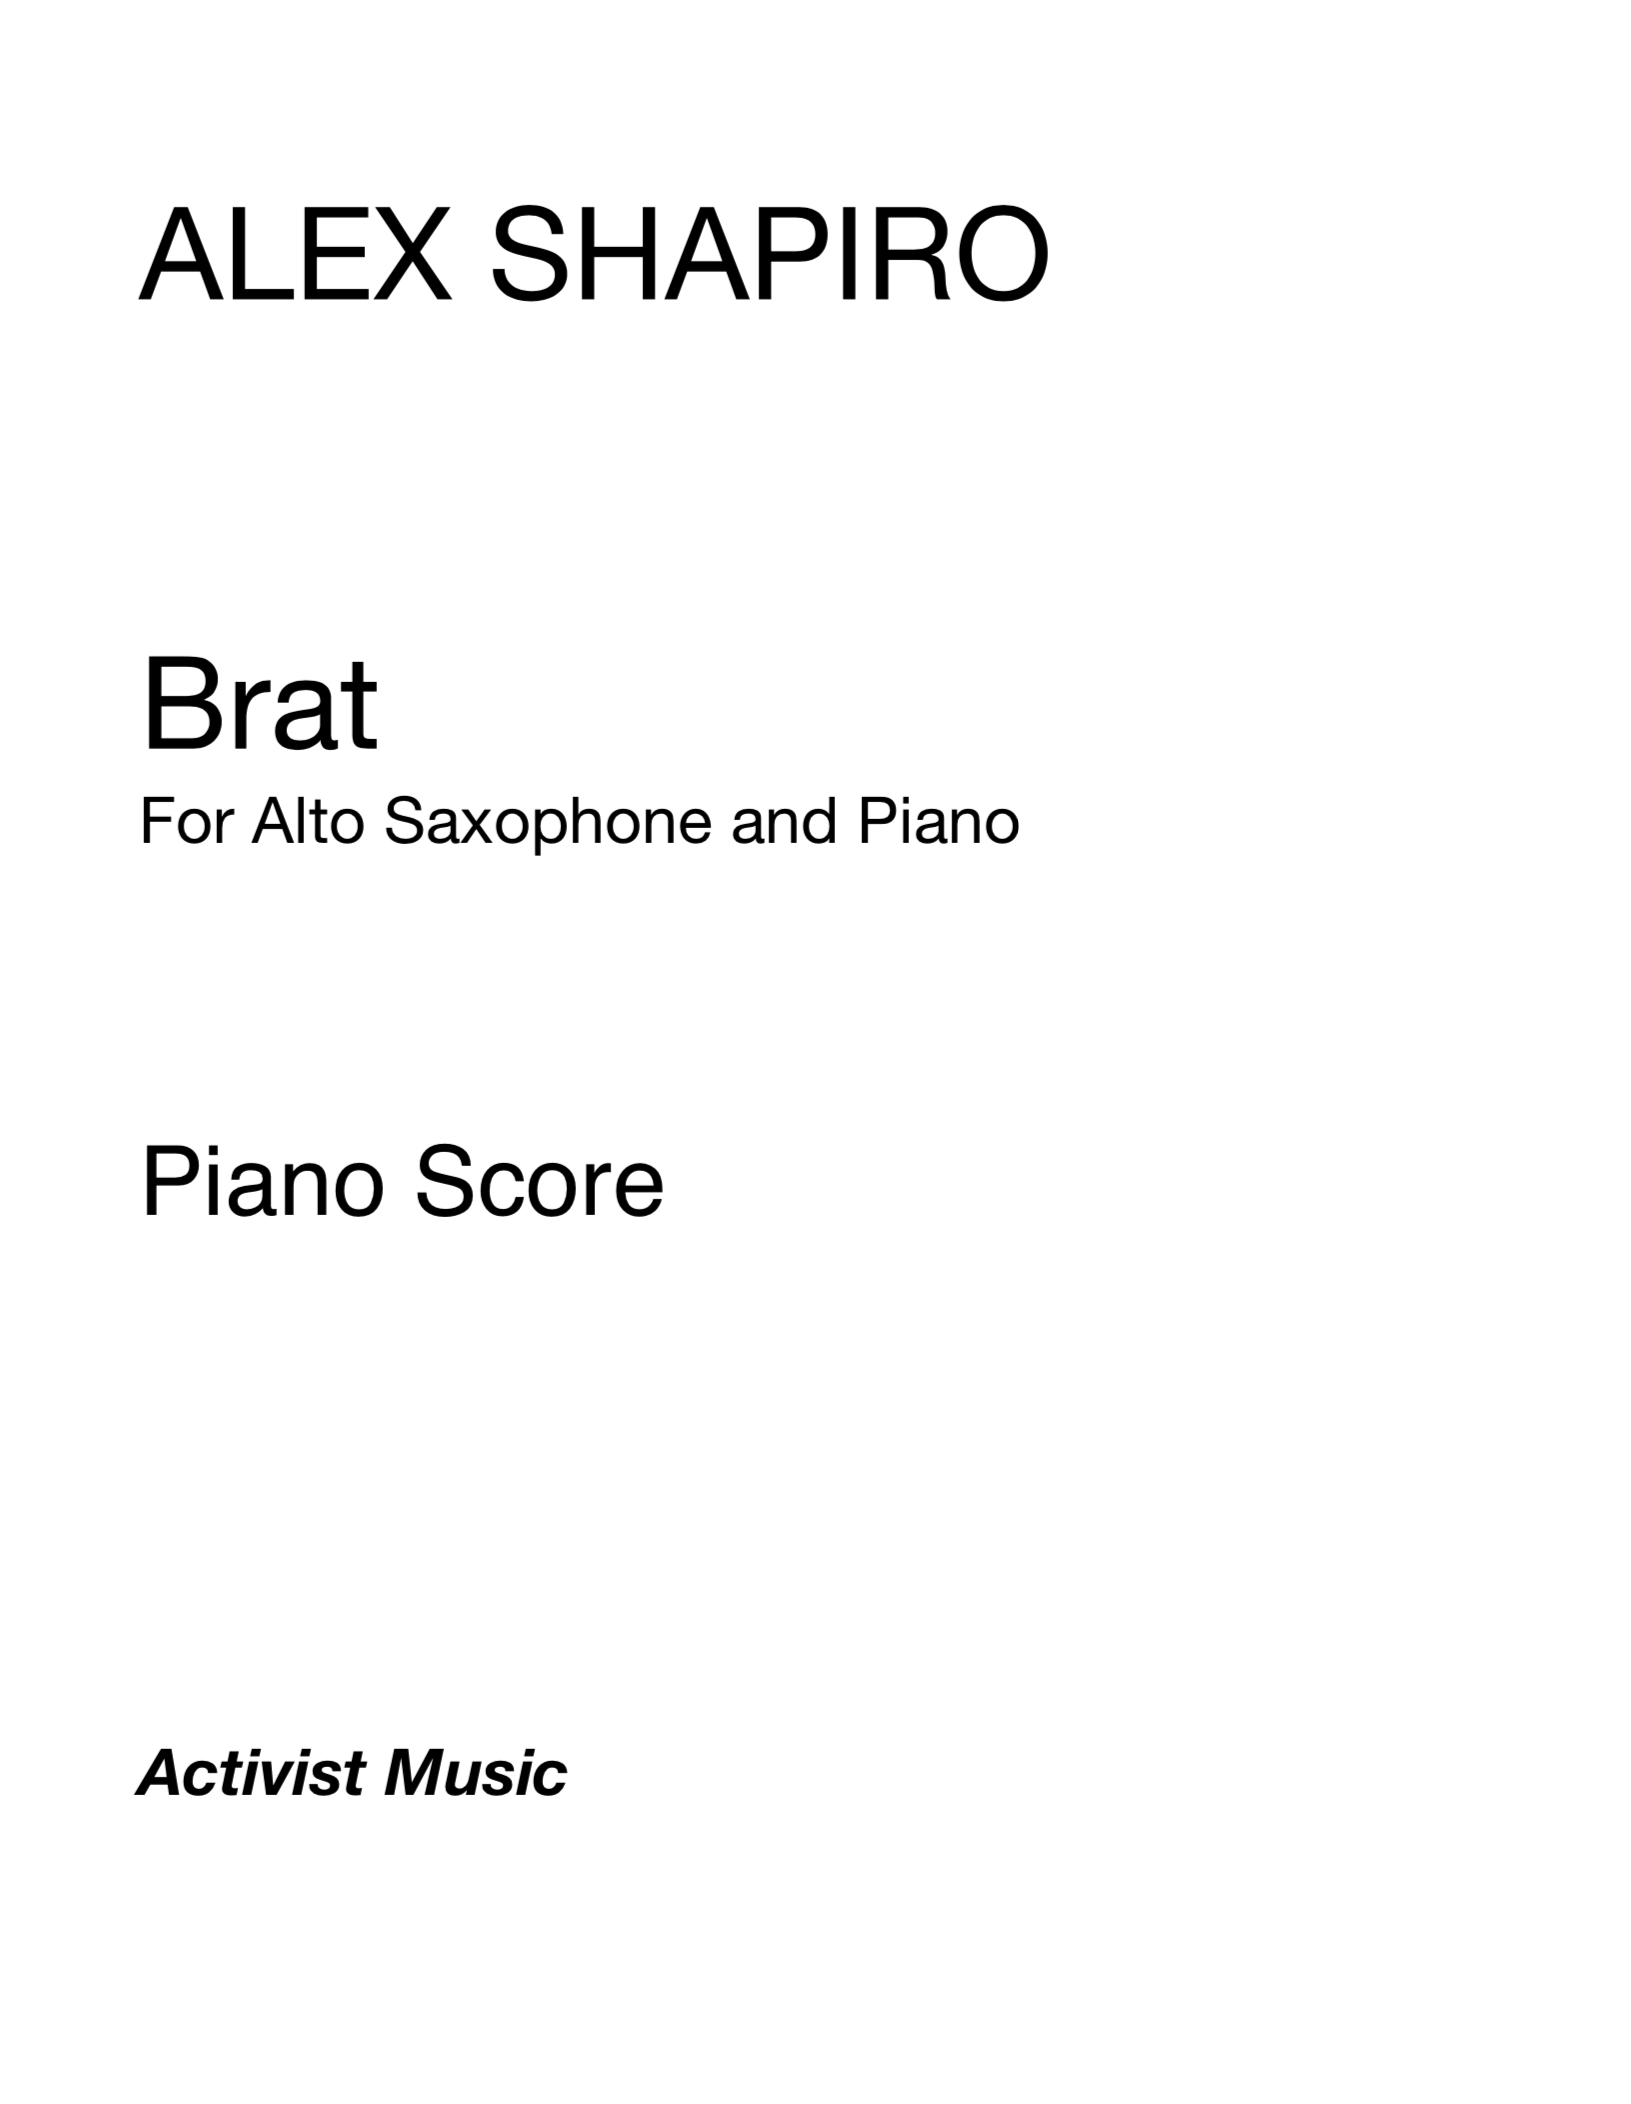 Brat by Alex Shapiro